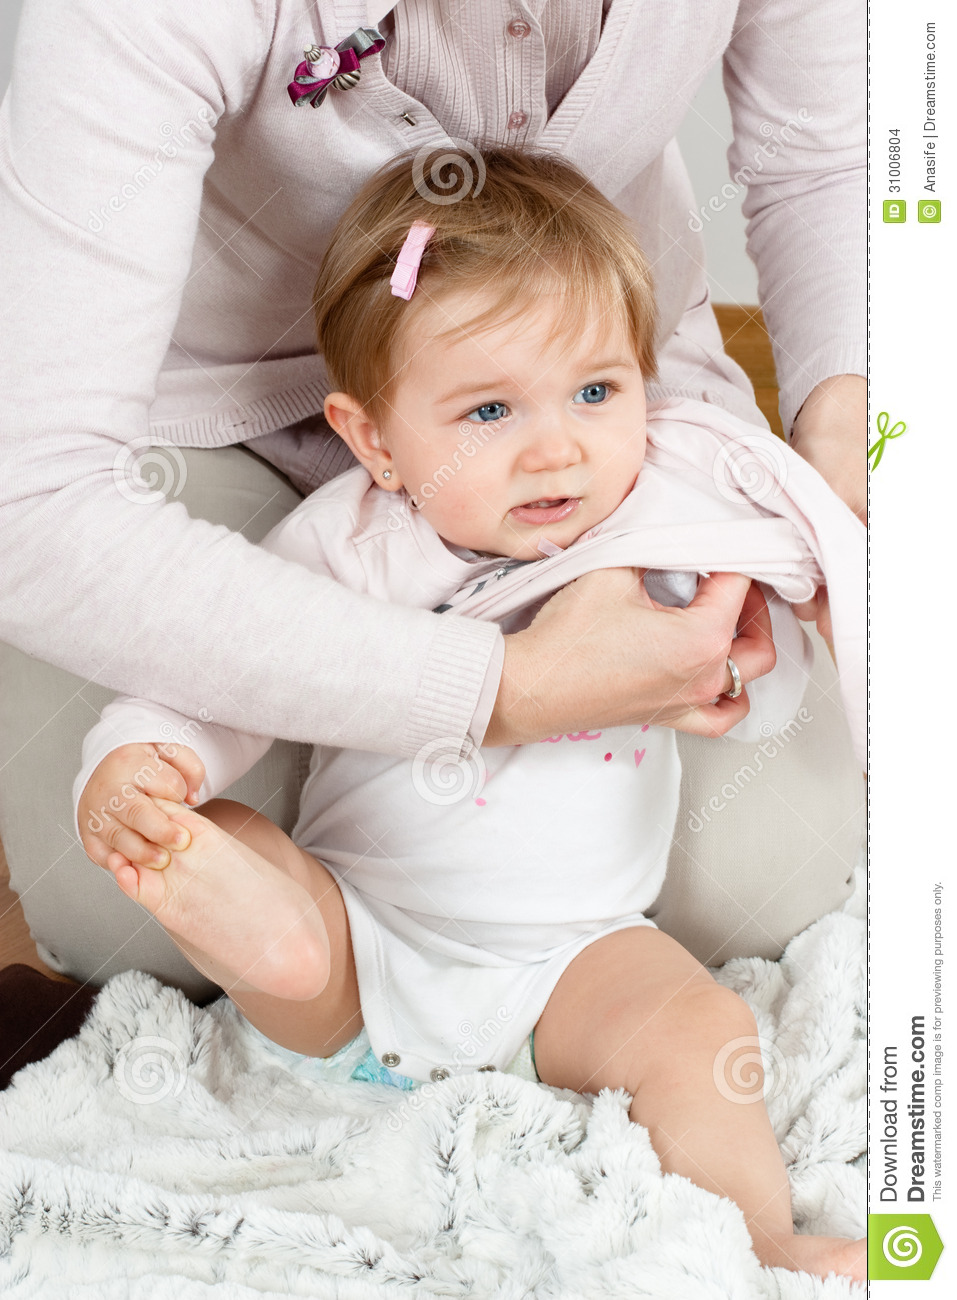 Mom Dressing Up Baby Stock Images - Image: 31006804